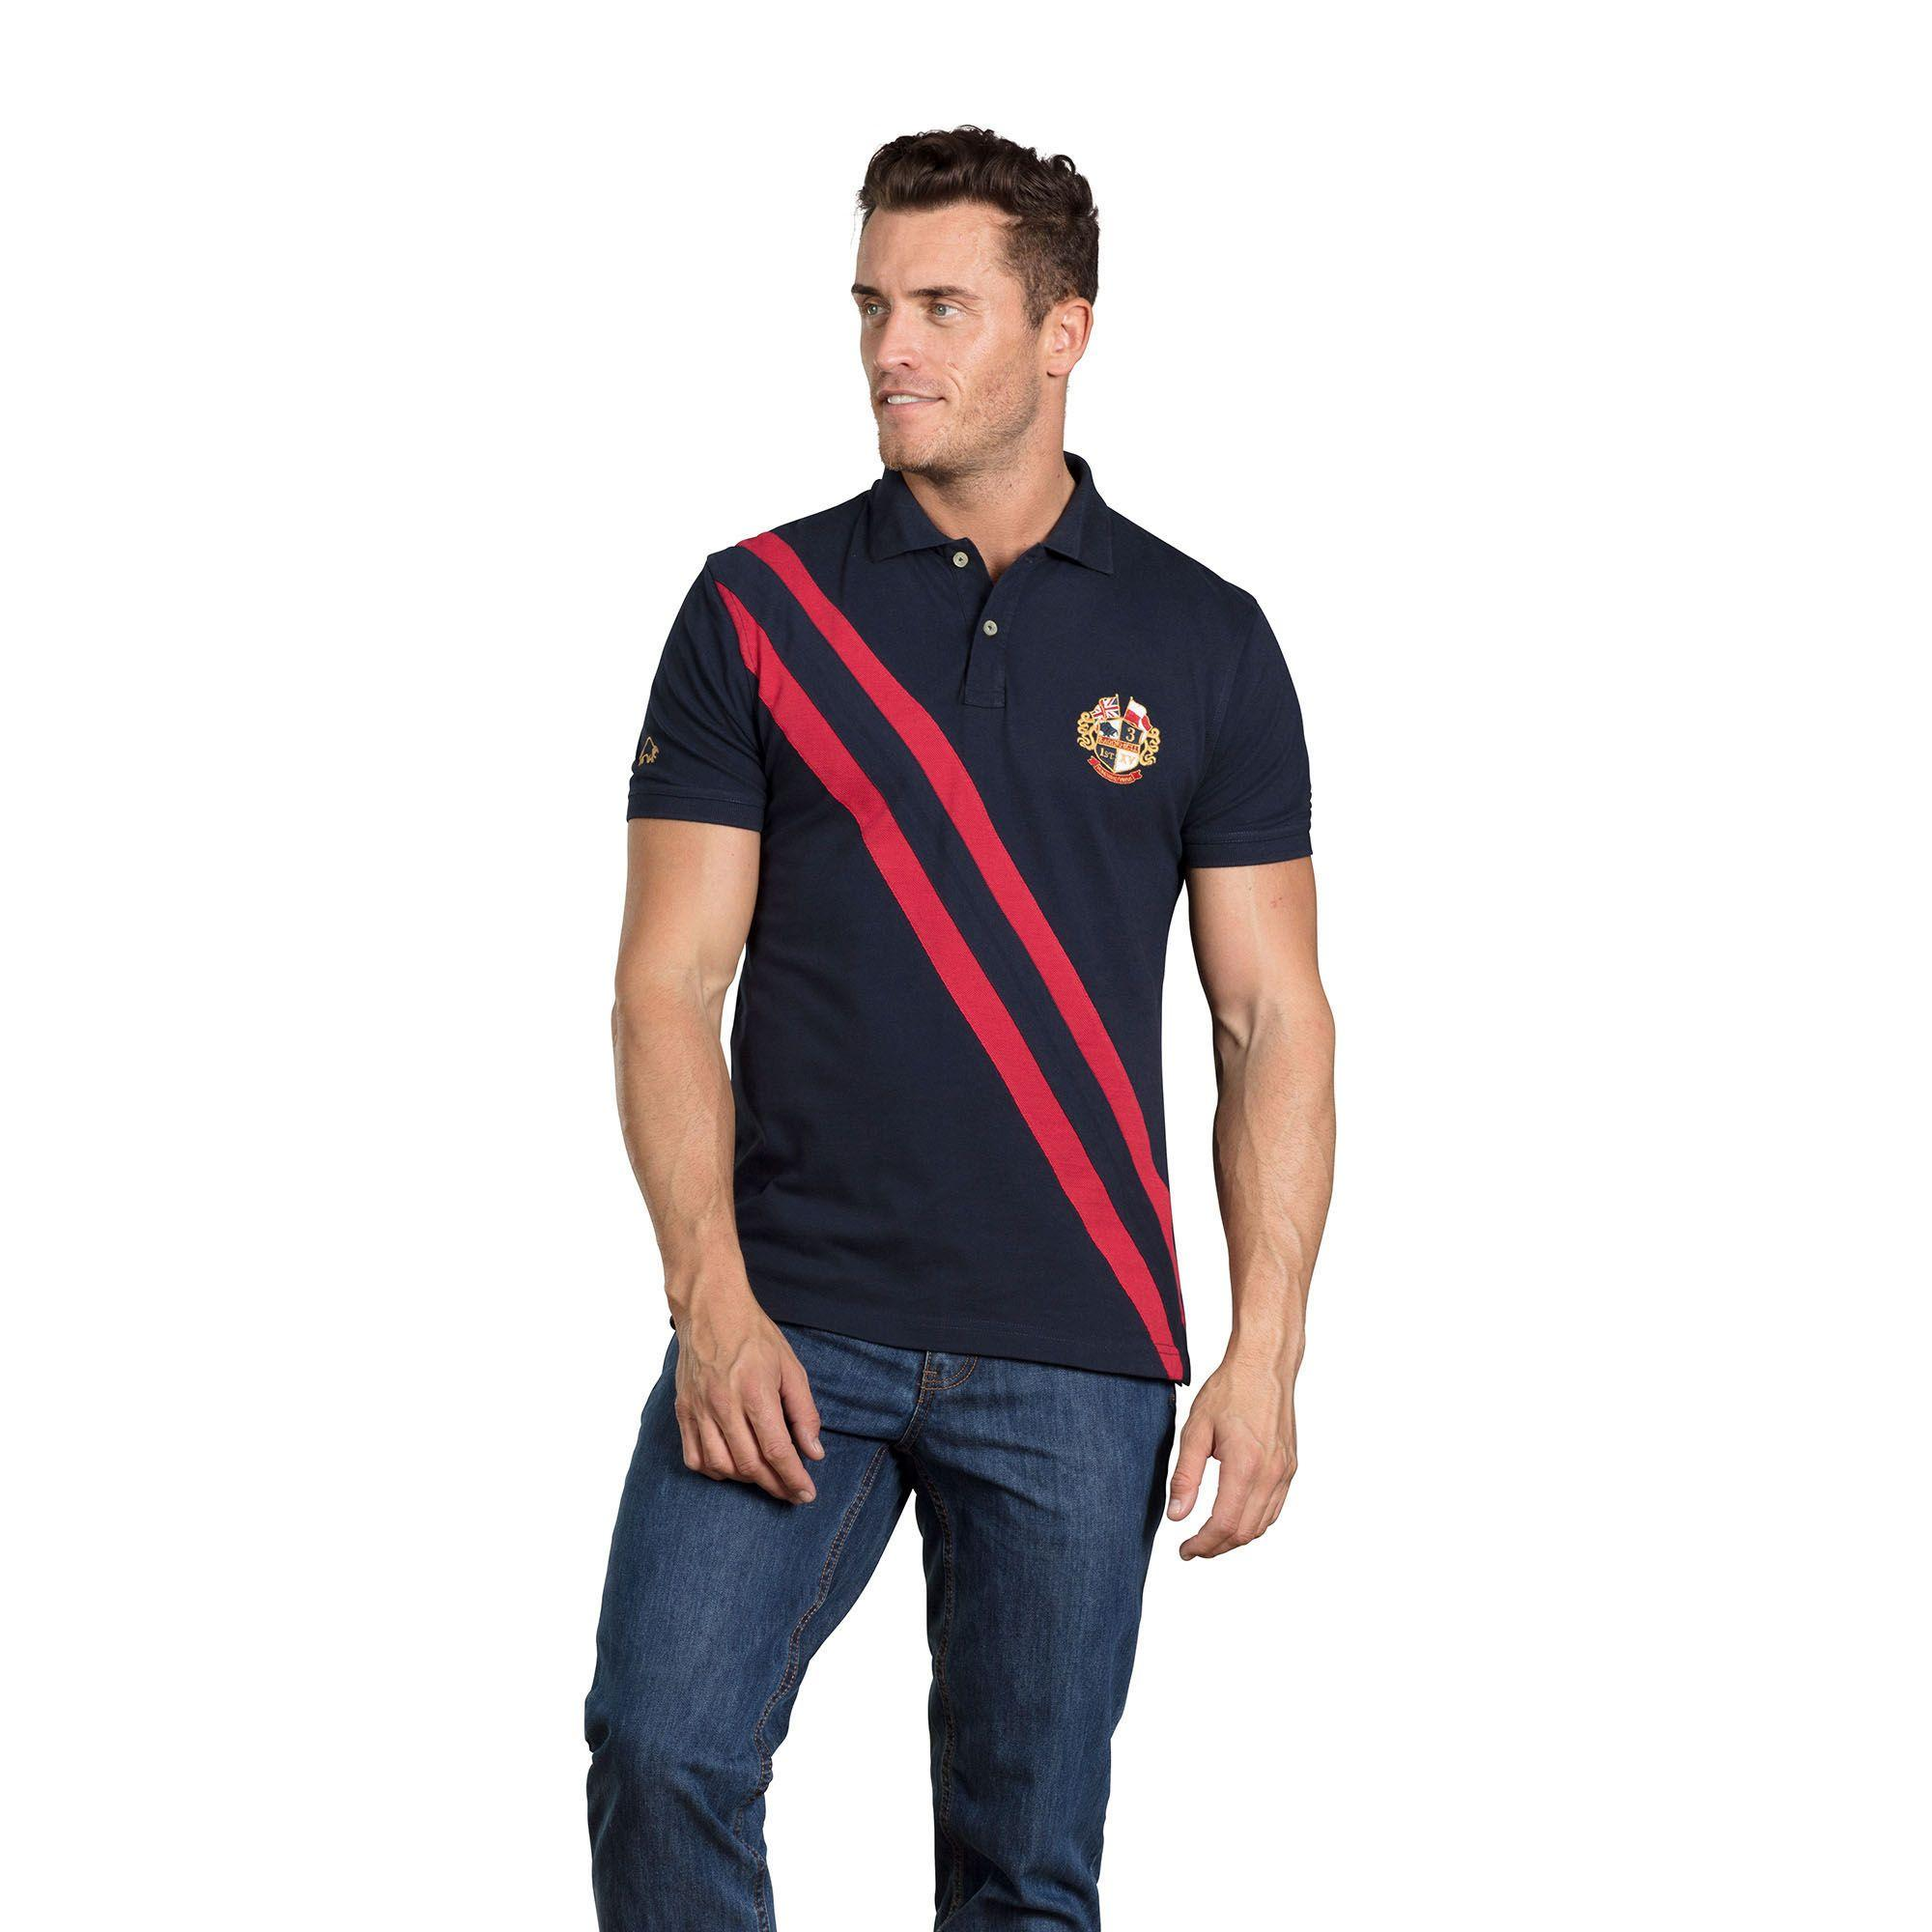 b5a1233a621 Raging Bull Navy Heritage Pique Polo Shirt in Blue for Men - Lyst